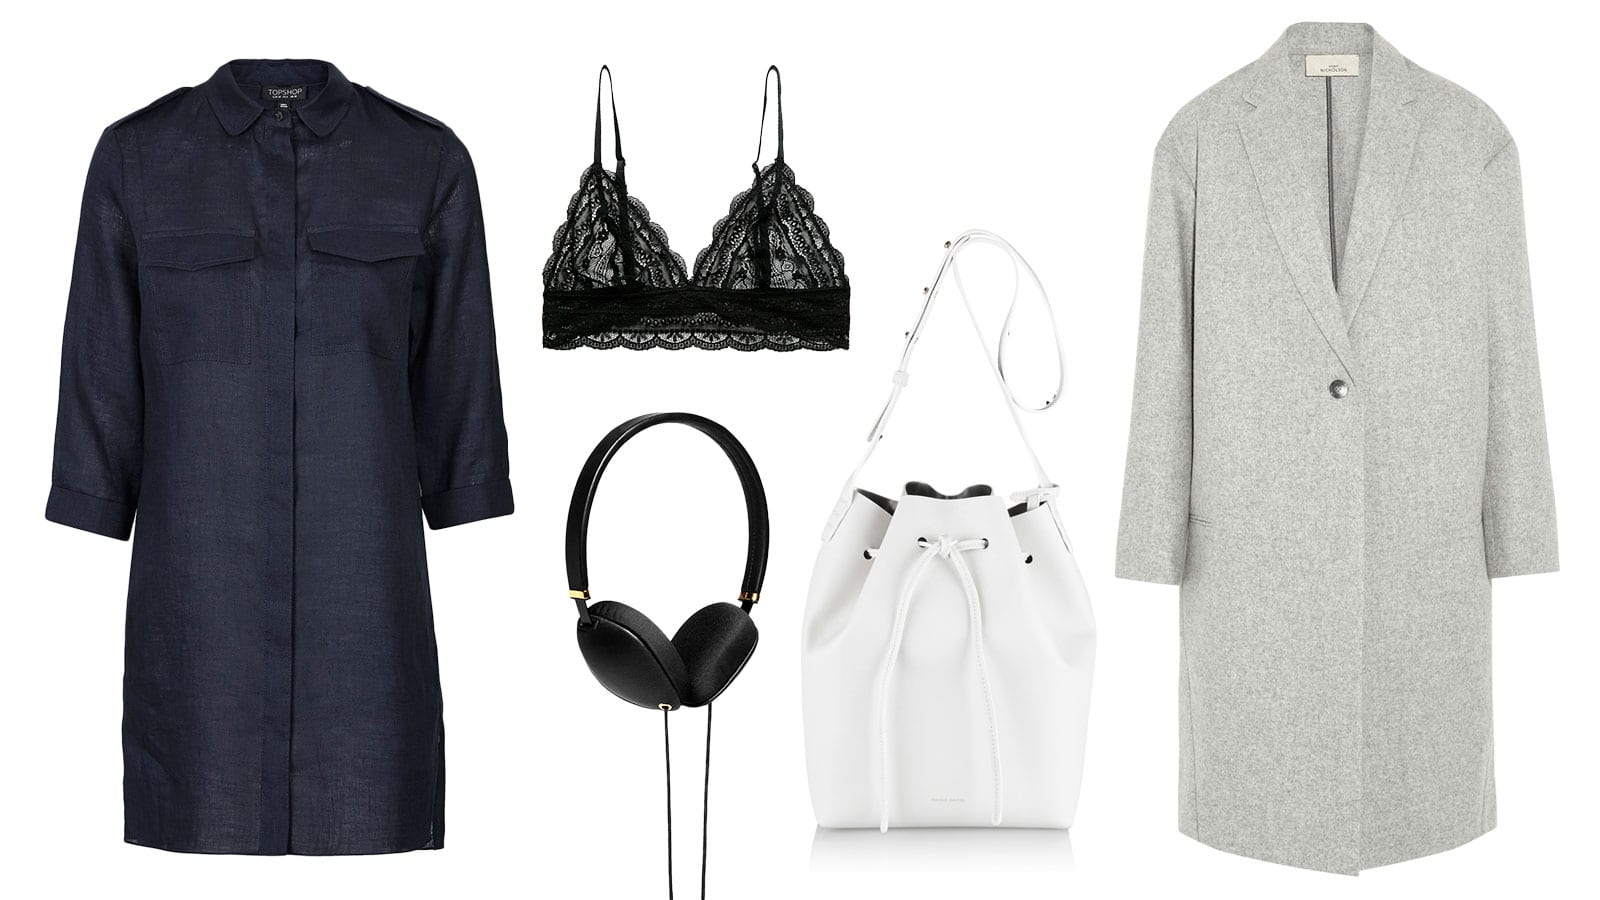 Shopping List | Indigo & Lace | 1. Mango - Lace Triangle Bra || 2. Topshop - Utility Linen Shirt Dress || 3. Studio Nicholson - Broadway Coat || 4. Mansur Gavriel - White Leather Bucket Bag || 5. Molami - Plica Black Headphones || 6. Topshop - France Silver Lace-Up Shoes